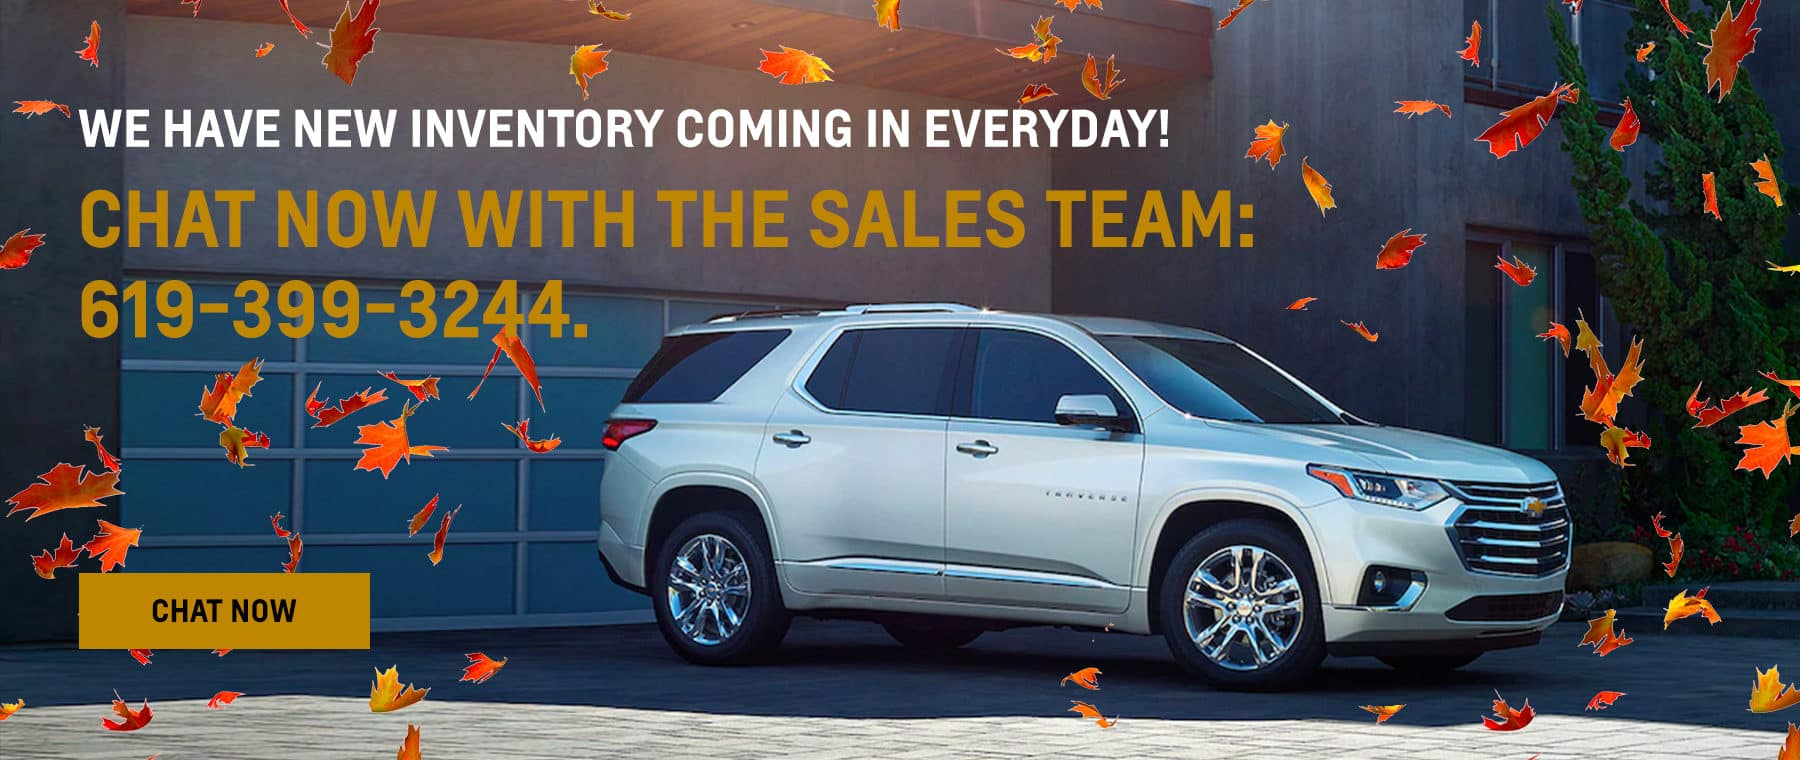 We have new inventory coming in everyday! Chat now with the sales team: 619-399-3244.